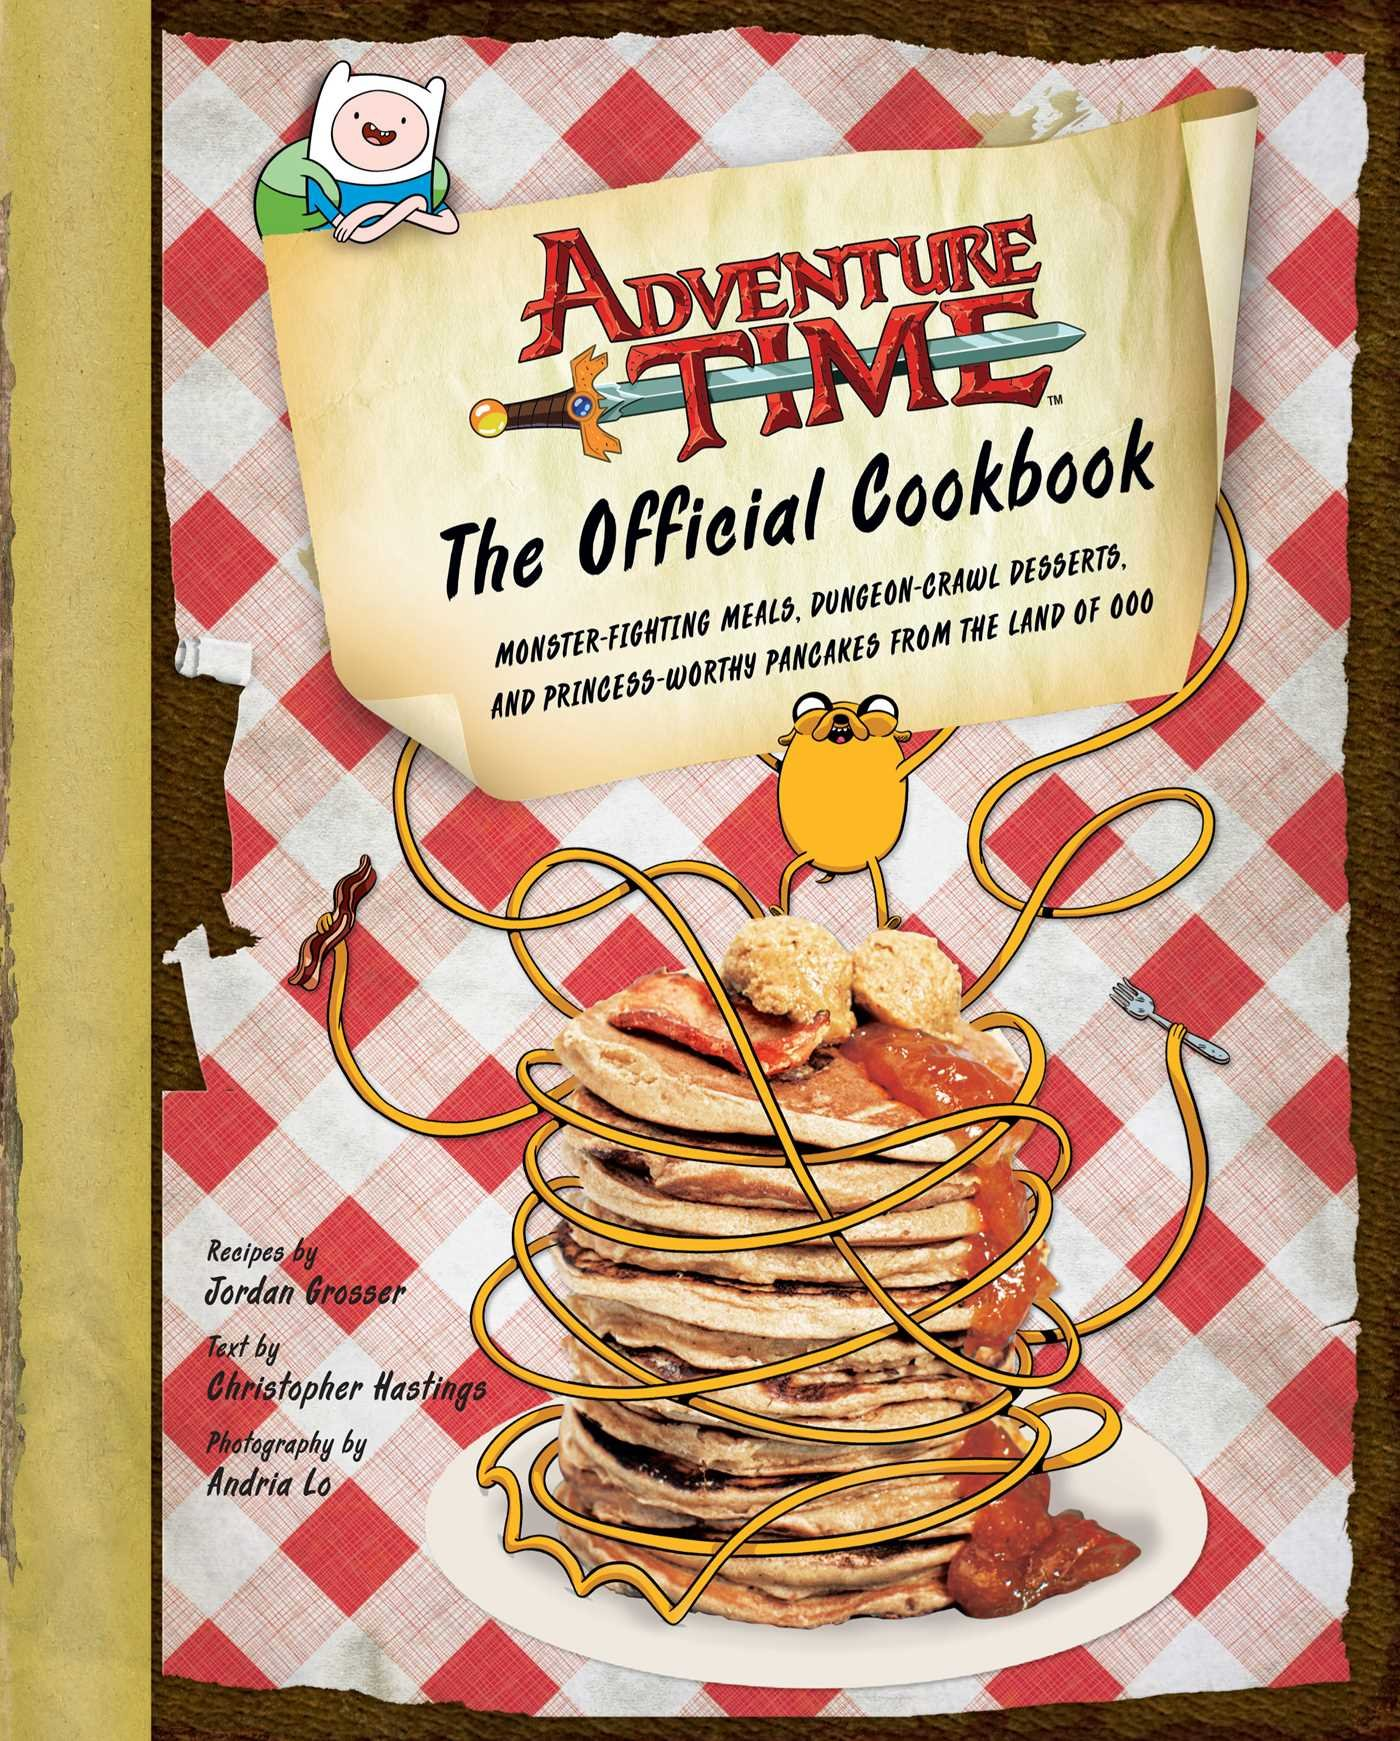 Adventure time the official cookbook jordan grosser christopher adventure time the official cookbook jordan grosser christopher hastings 9781608876433 amazon books forumfinder Image collections